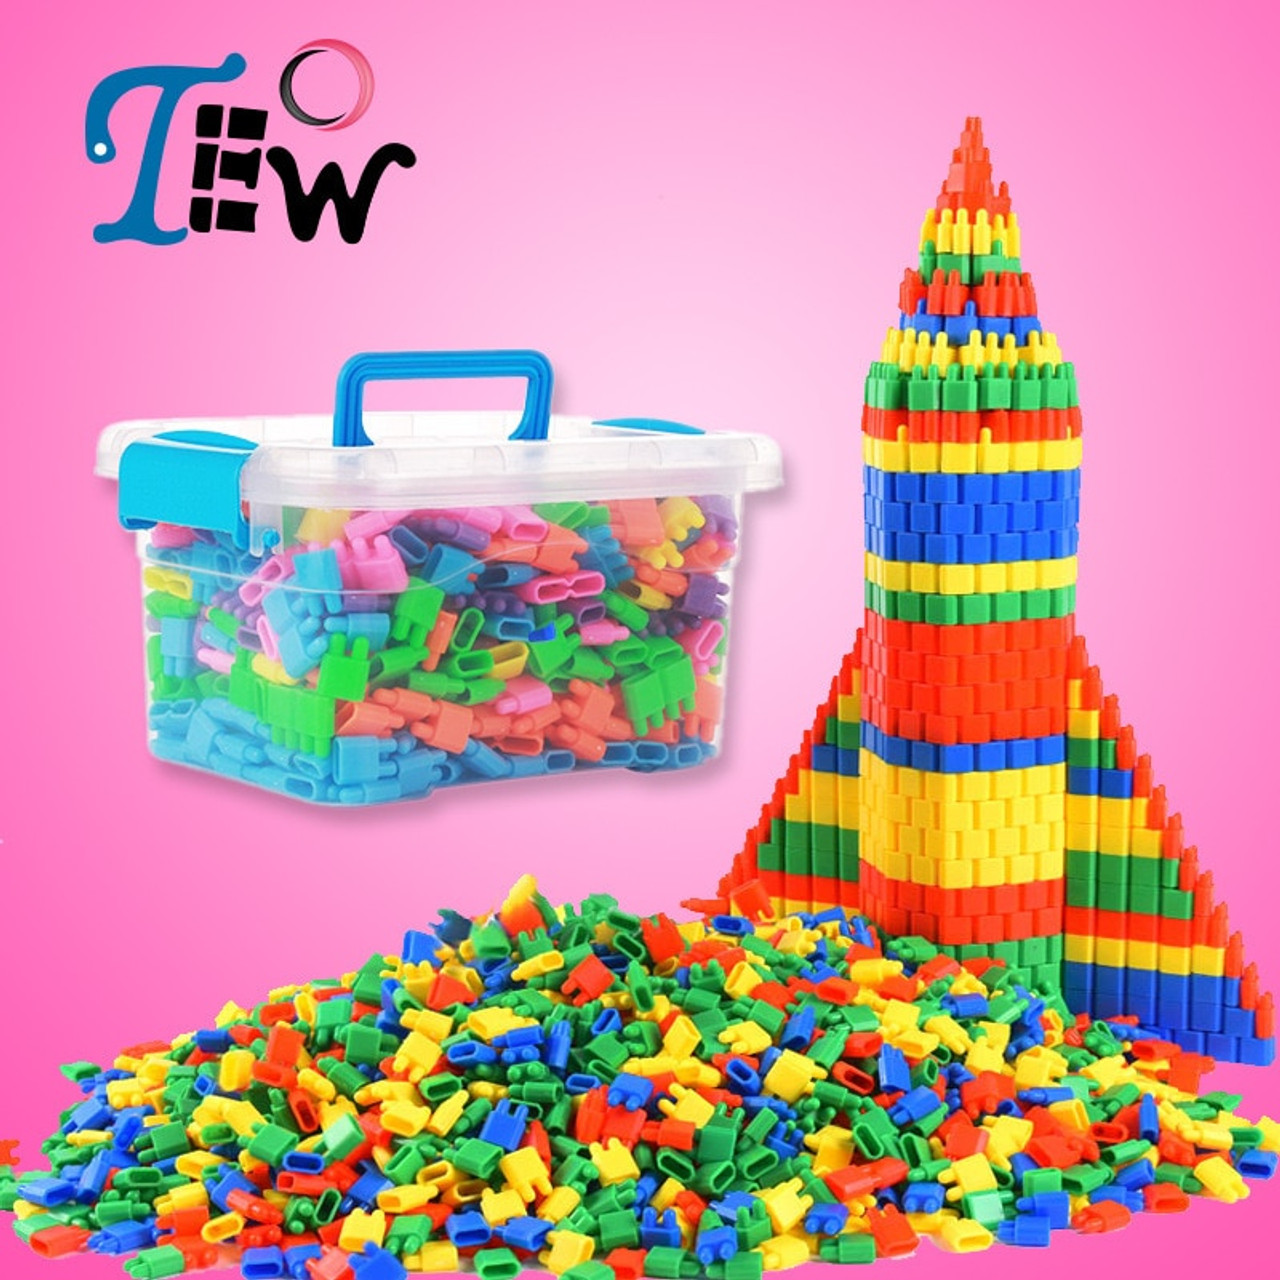 Colourful Toy Puzzle Plastic Building Blocks Bricks Baby Children New Hot